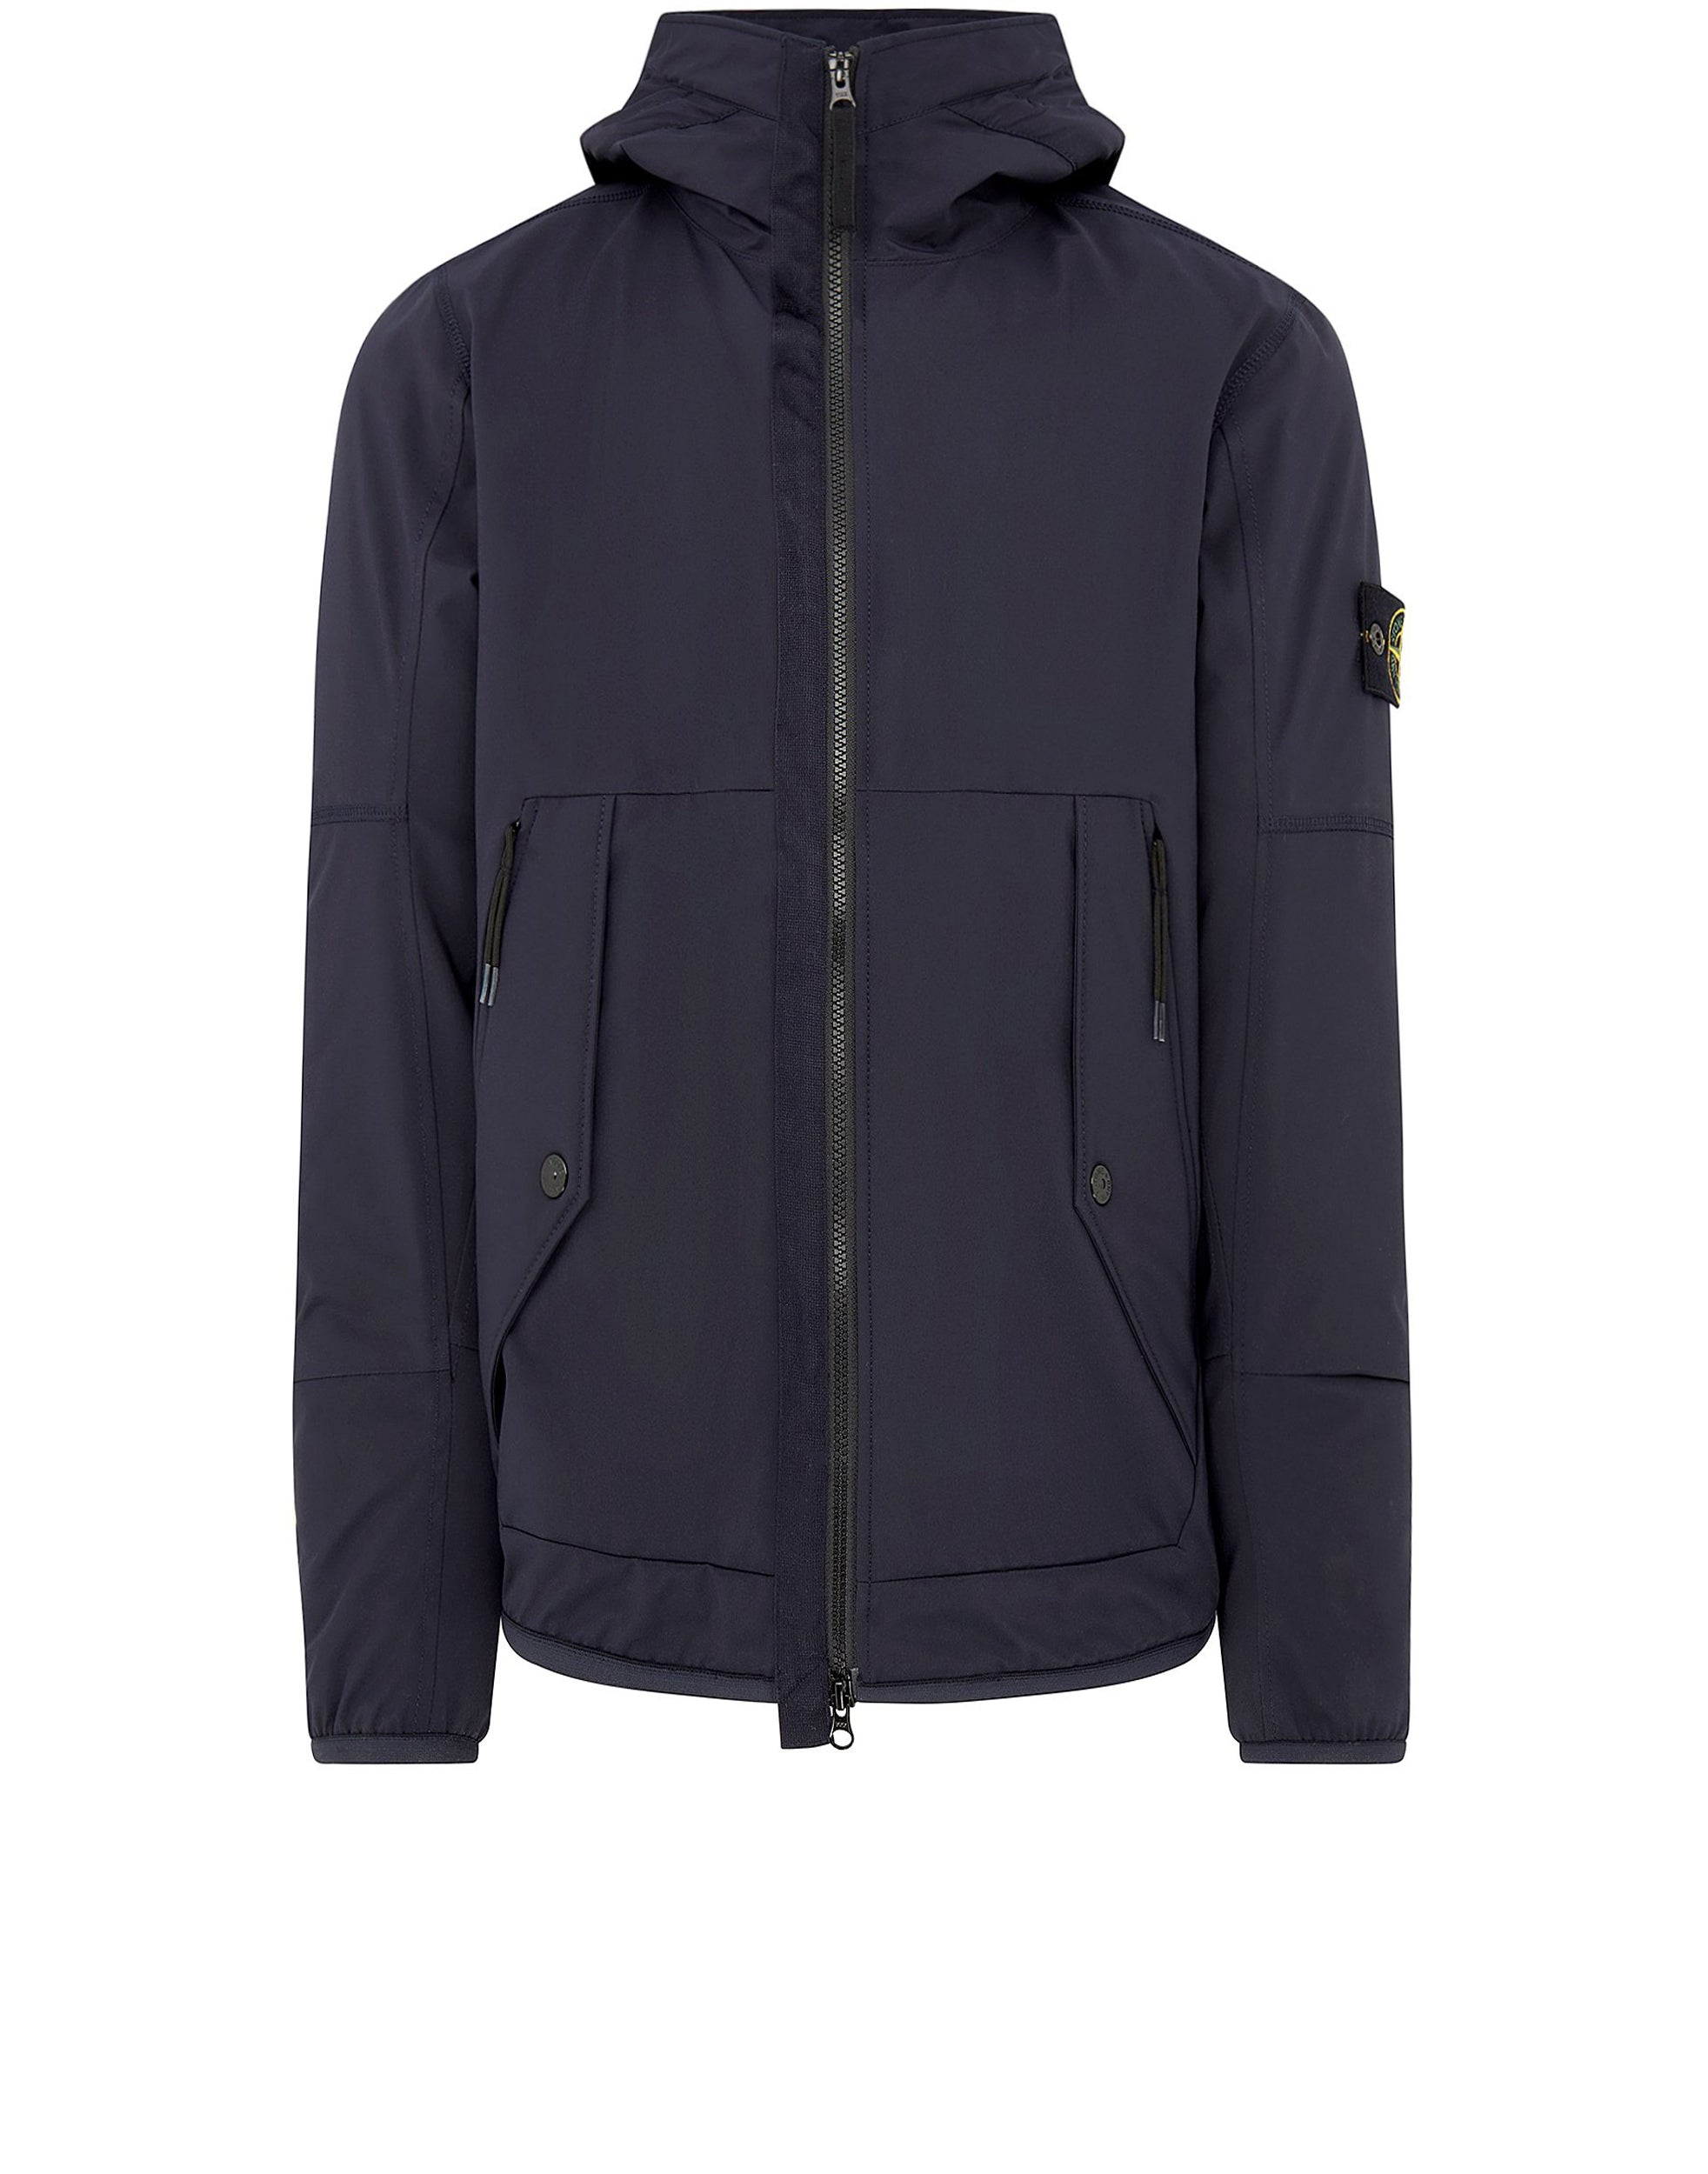 41027 SOFT SHELL-R WITH PRIMALOFT® INSULATION TECHNOLOGY Jacket in Navy Blue